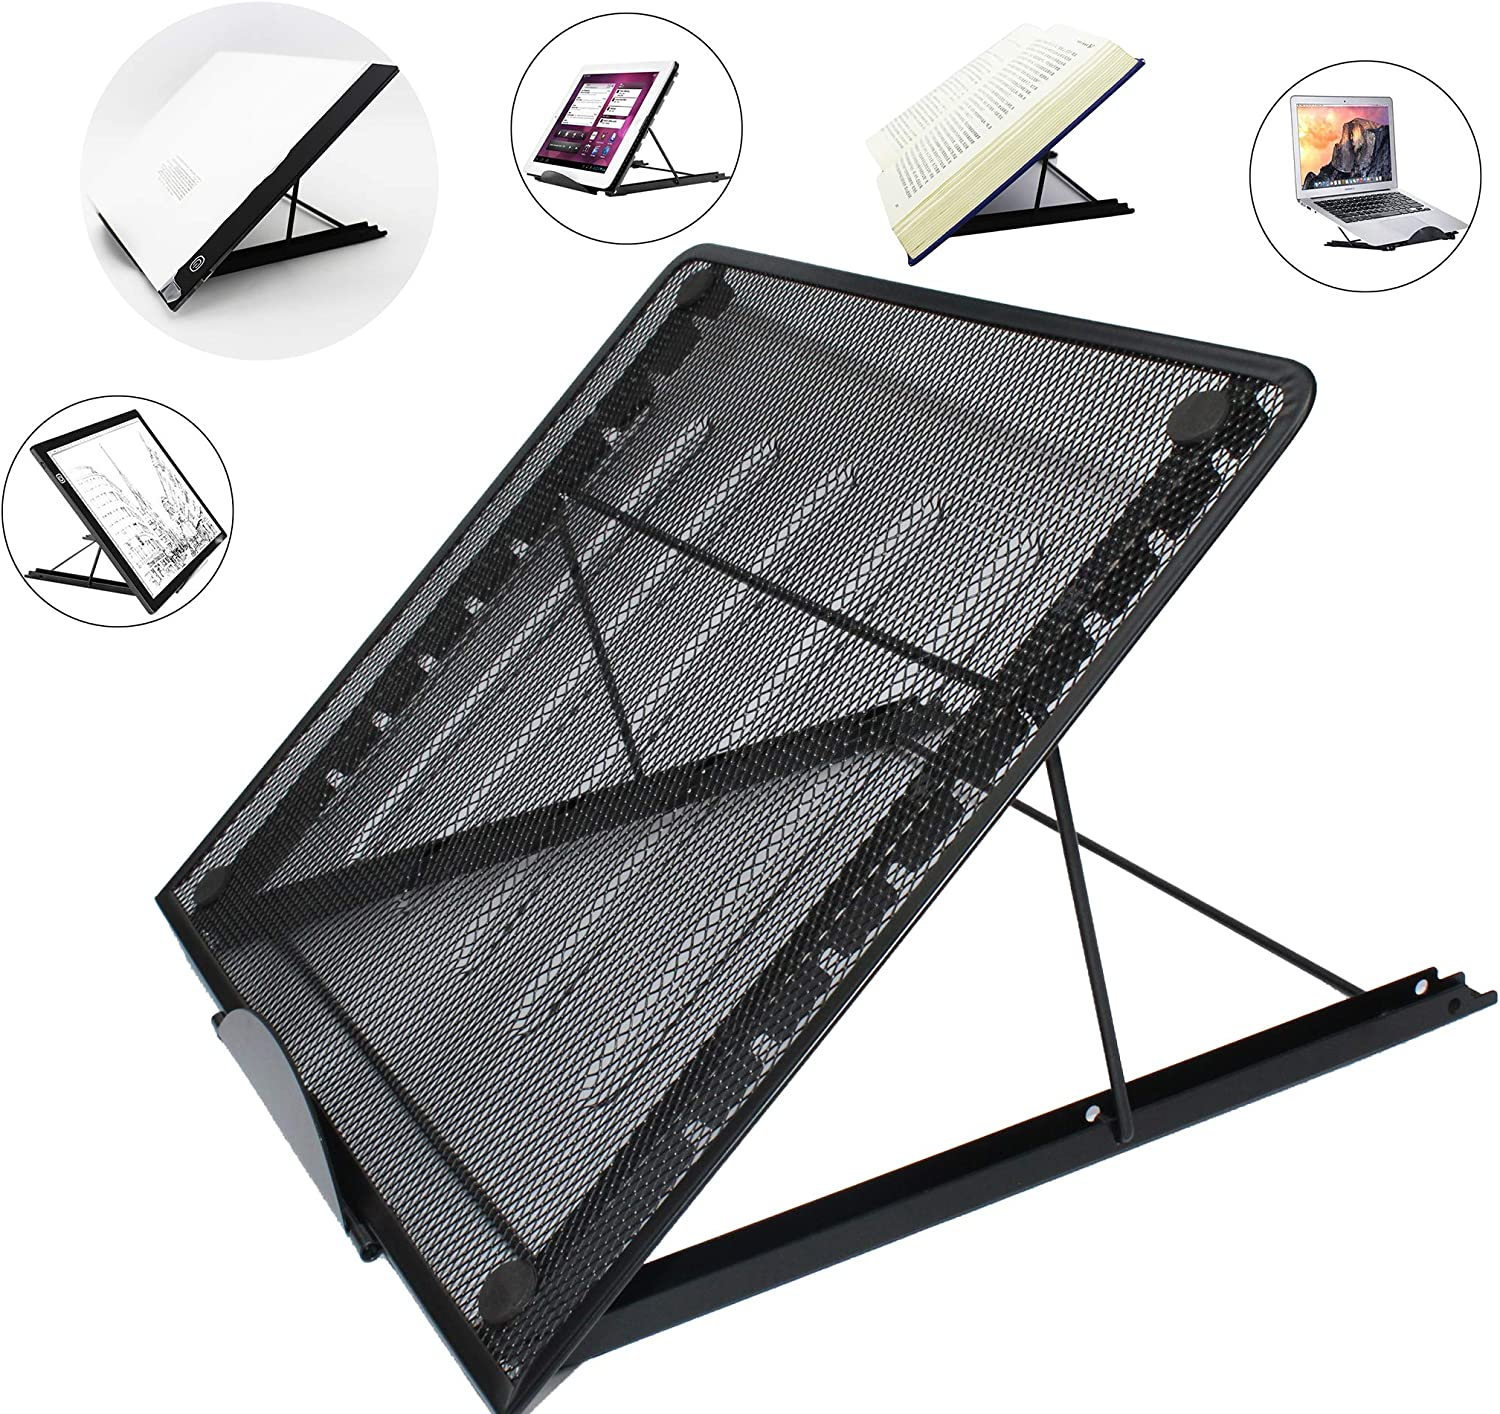 13.4x11.6inch Large Version Stand Ventilated Adjustable Light Box Laptop Pad Stand, Multifunction Skidding Prevented Tracing Holder for Ipad A3 A4 LED Tracing Light Pad Tablet, Diamond Painting tracer